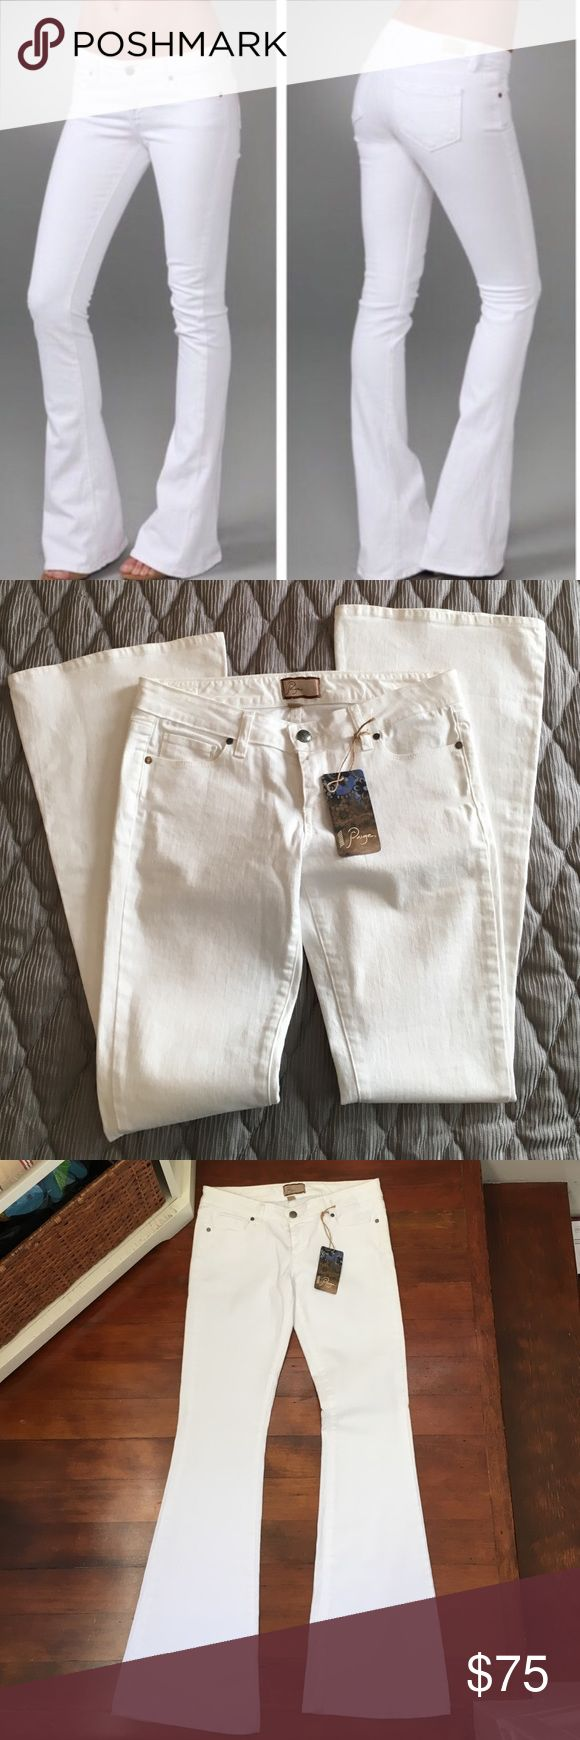 "⚜️SALE⚜️NWT! Paige Laurel Canyon Flare in White ULTRA WHITE A mid rise flare jean that hugs like a skinny down the leg and kicks out mid-calf into a perfect flare. This white jean that is perfect for spring / summer. Finished with faux pockets and Paige leather patch.   Front Rise: 8 3/8"" Inseam: 34"" Leg Opening: 21 3/4"" 10 oz Fabric 92% Cotton, 6% Elastomultiester, 2% Elastane Paige Jeans Jeans"